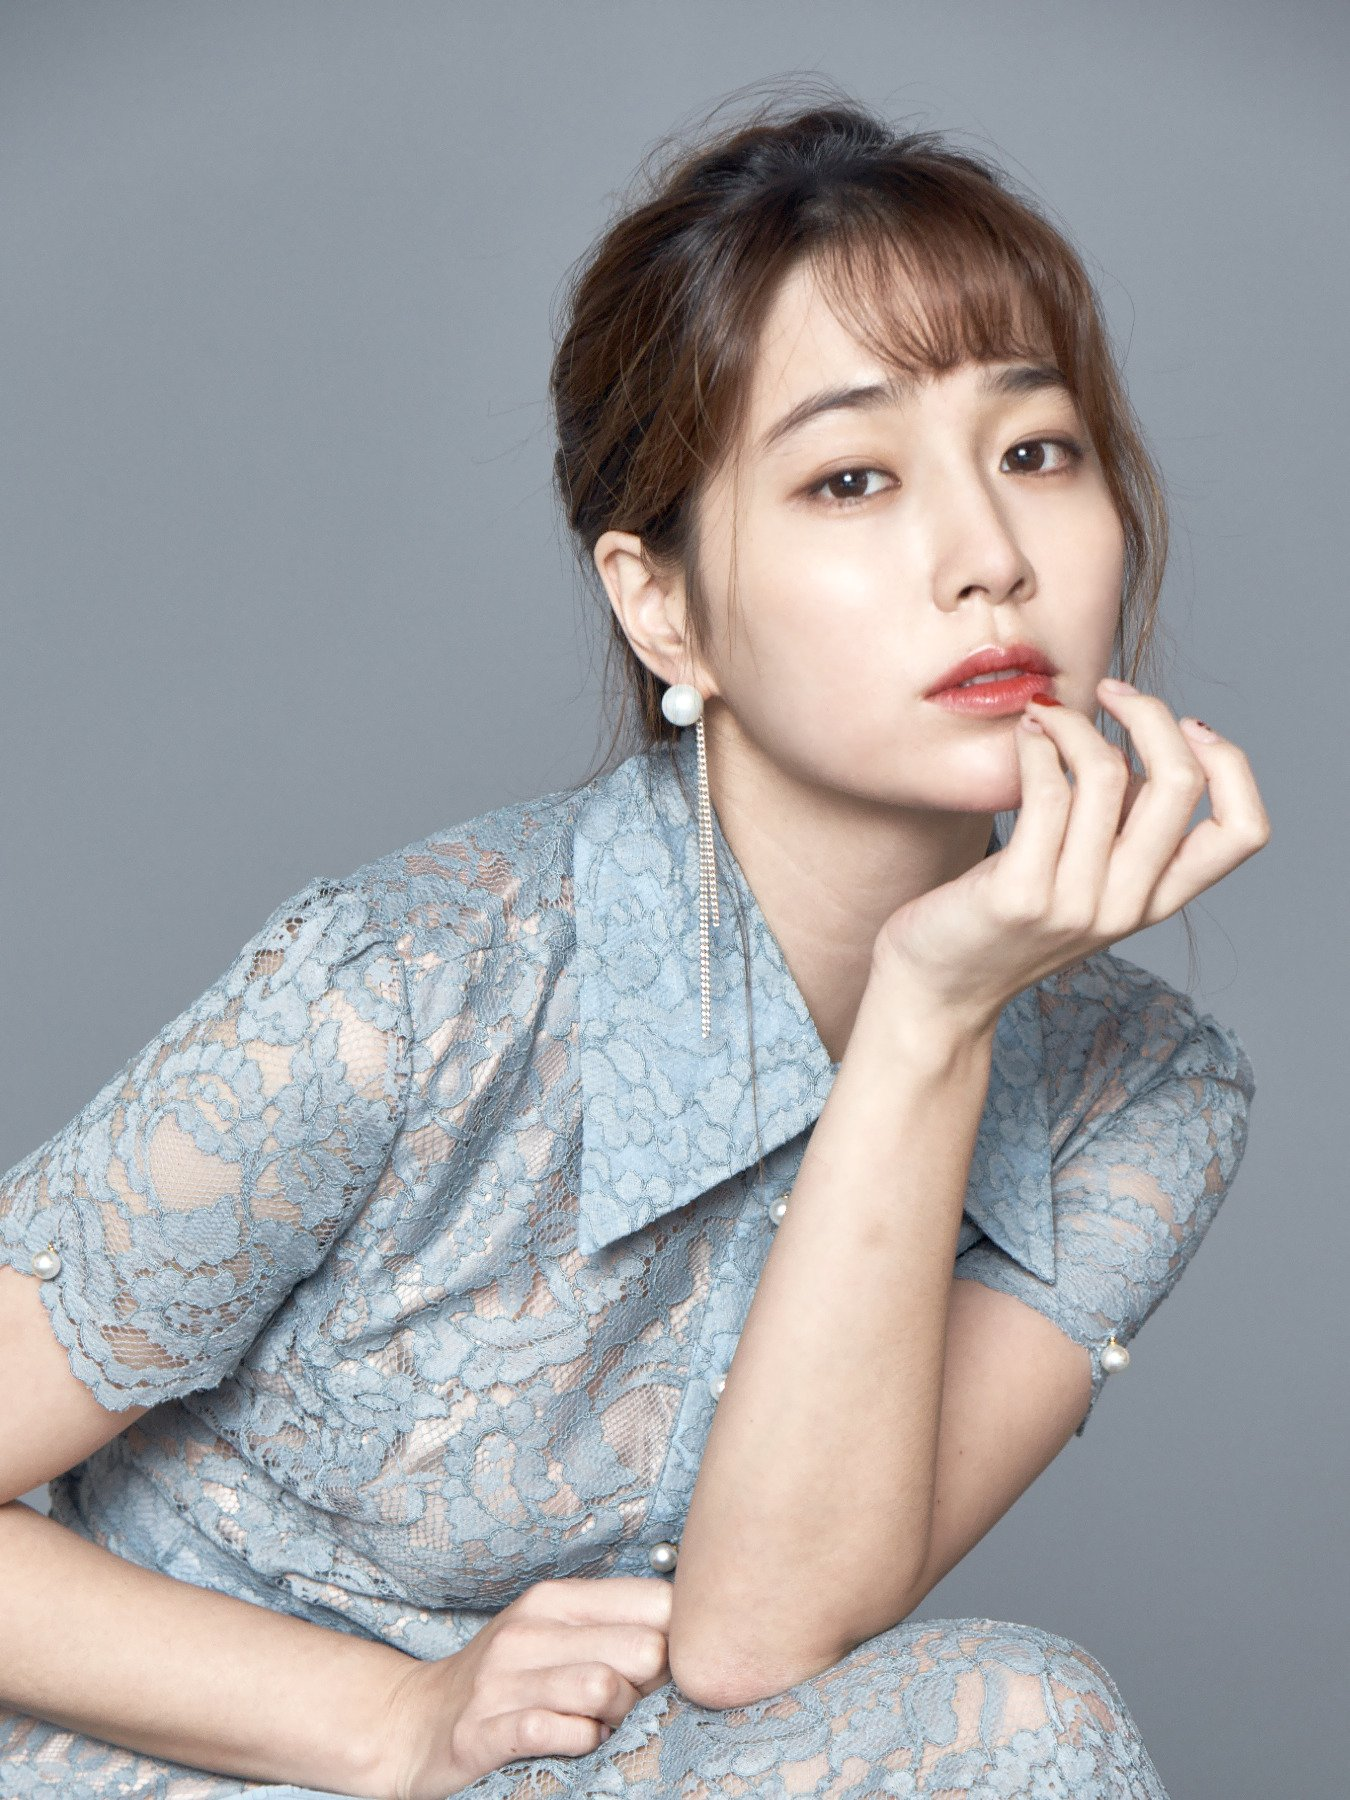 """Lee Min-jung : min-jung, Chemistry, """"Once, Again,"""", Husband, Byung, Their, Reacted, Romance, Scenes,, Soompi"""